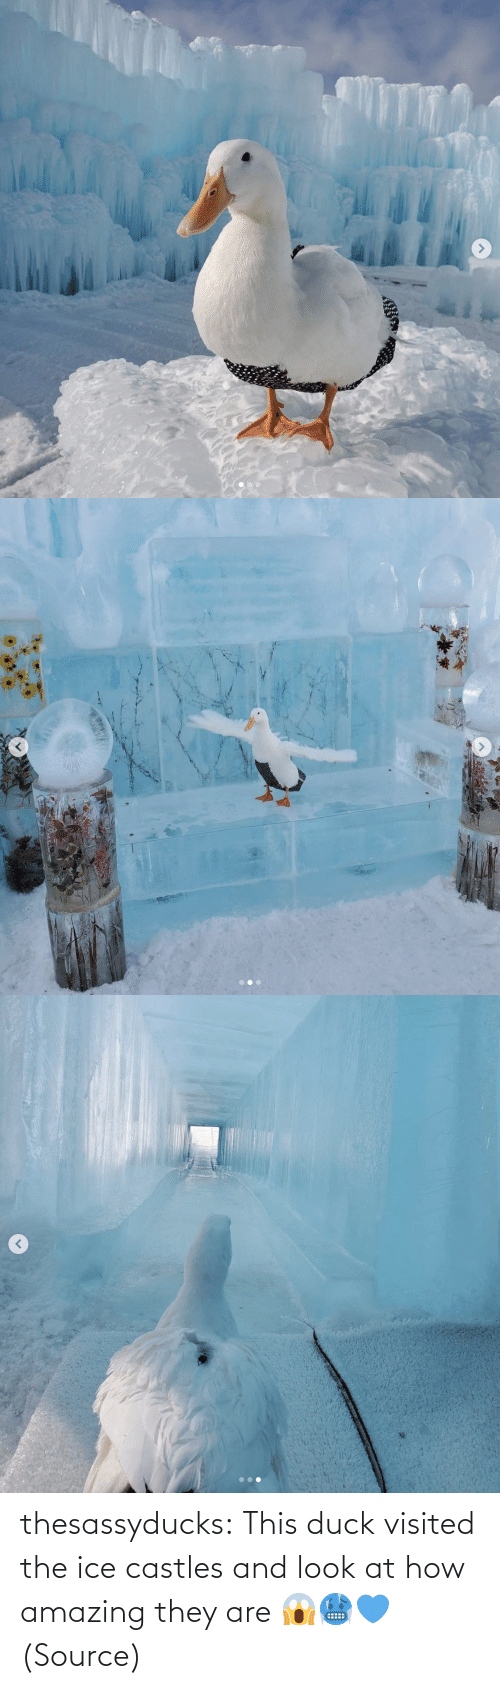 They Are: thesassyducks: This duck visited the ice castles and look at how amazing they are 😱🥶💙 (Source)